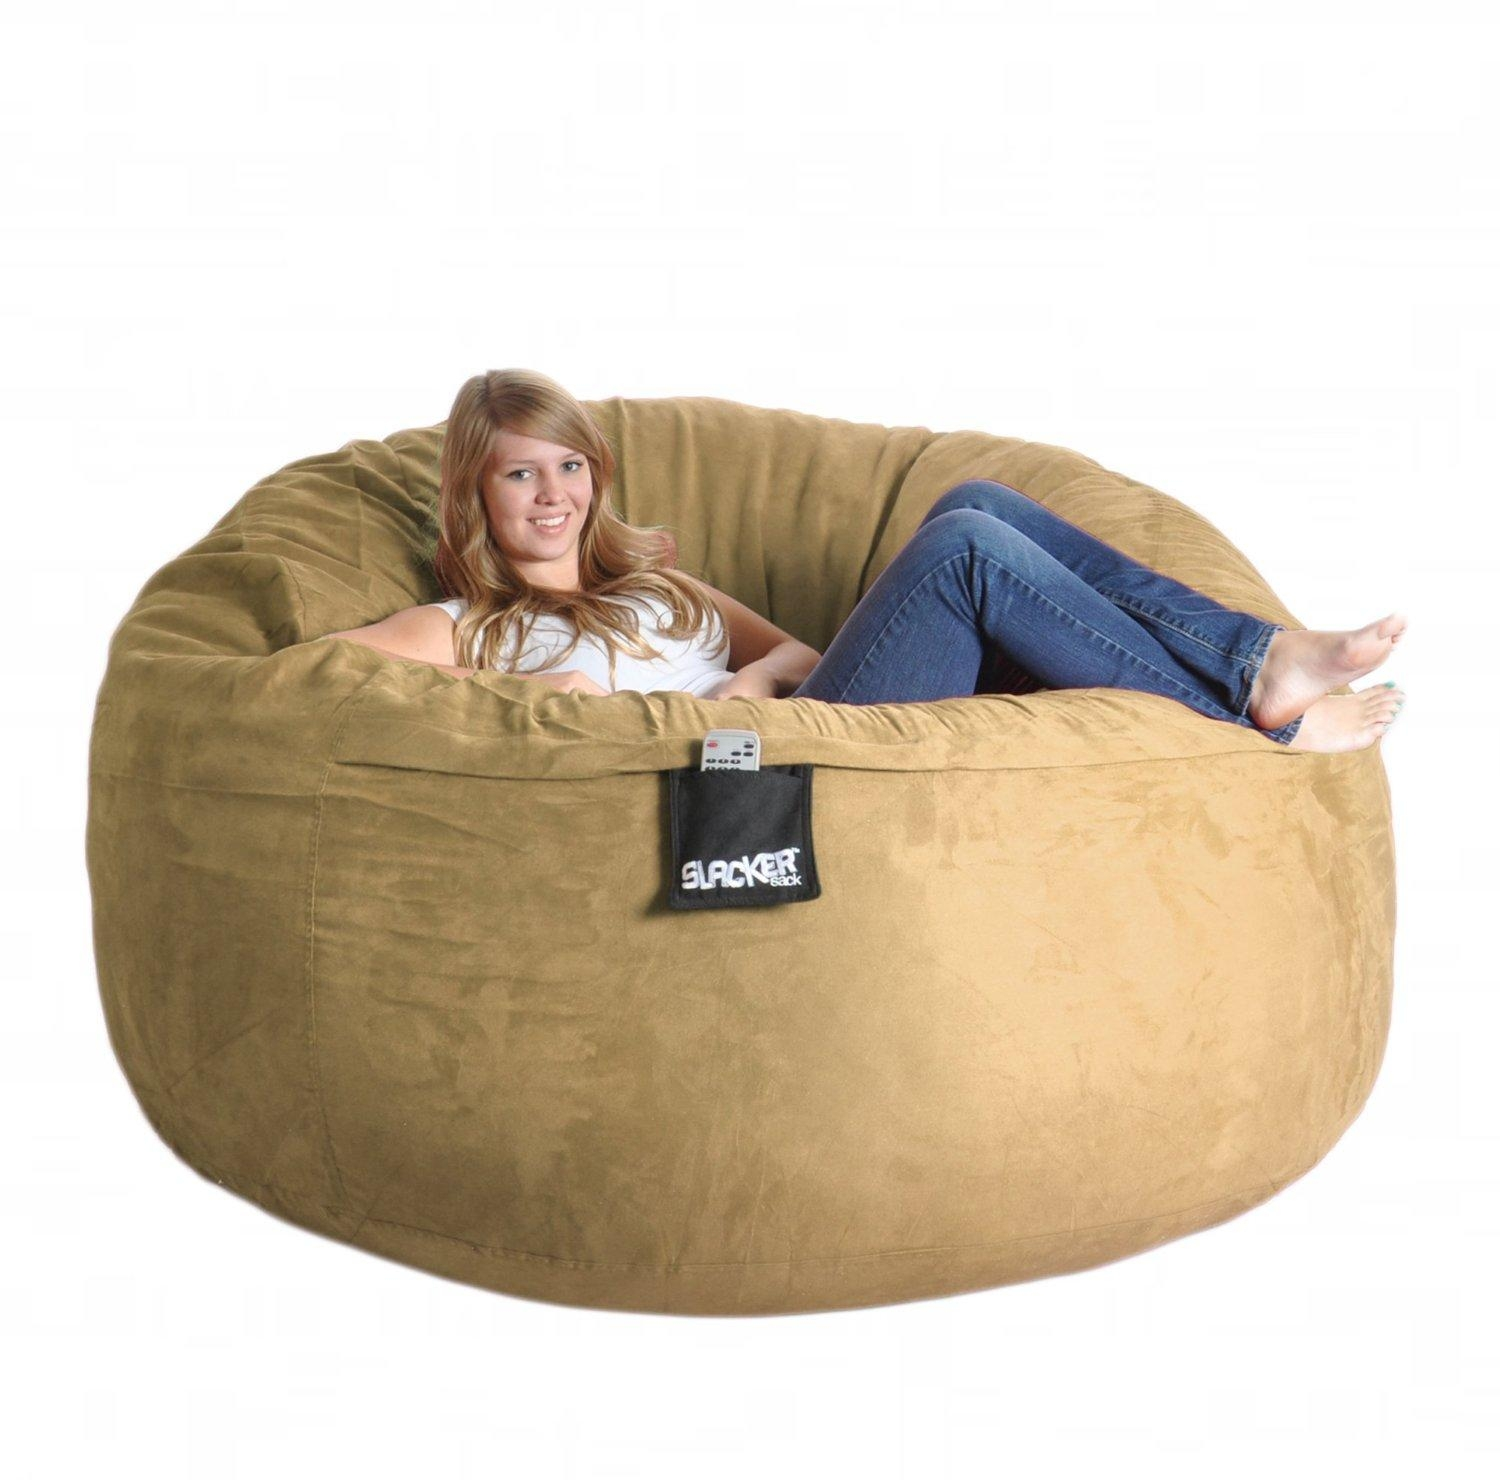 Furniture & Sofa: Fascinating Big Joe Lumin Bean Bag Chair With Inside Giant Bean Bag Chairs (Image 7 of 20)